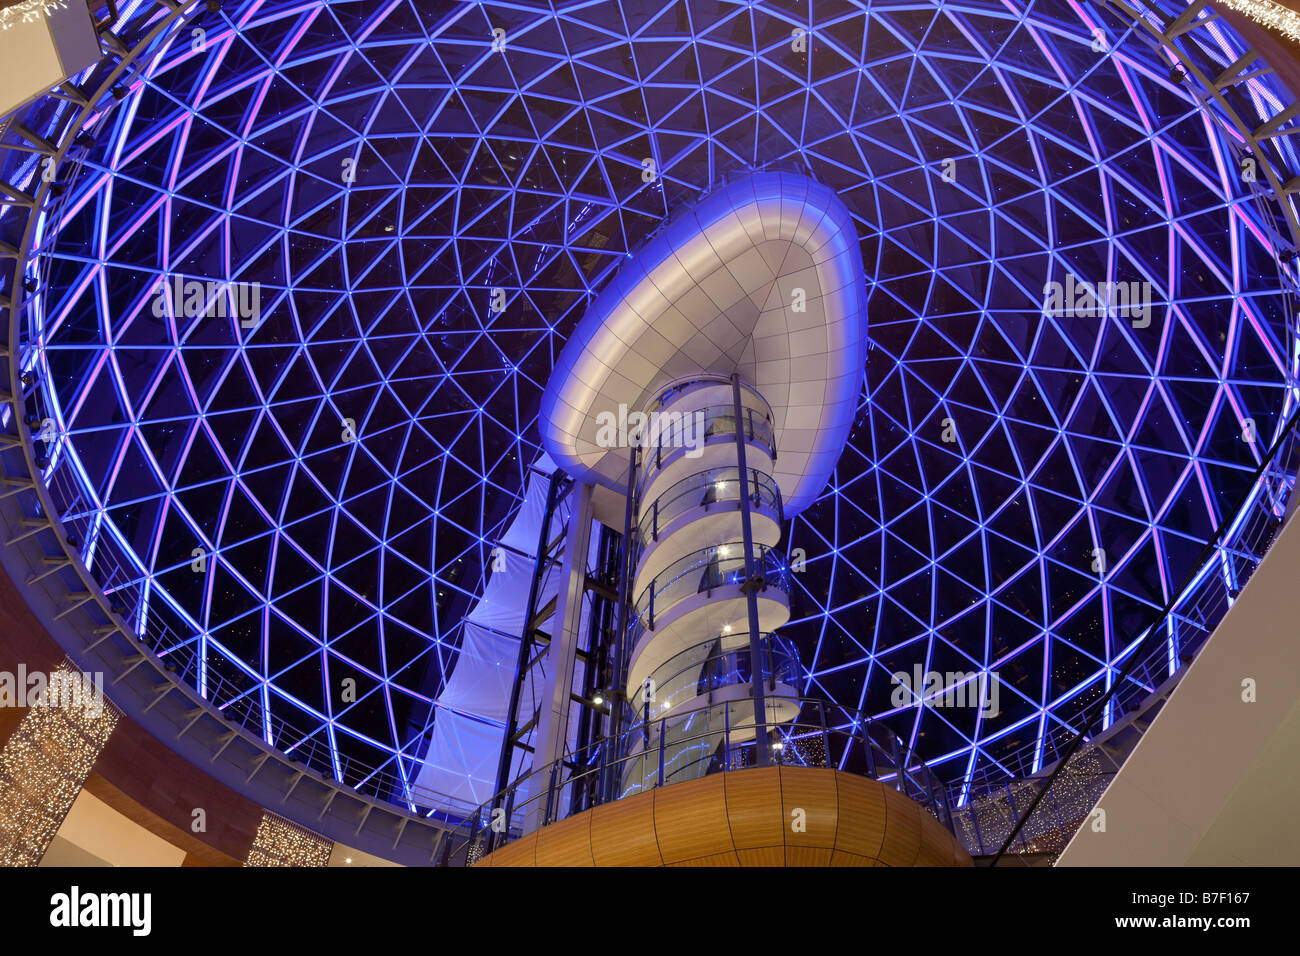 Victoria Square shopping centre, Belfast, Northern Ireland, UK - Stock Image